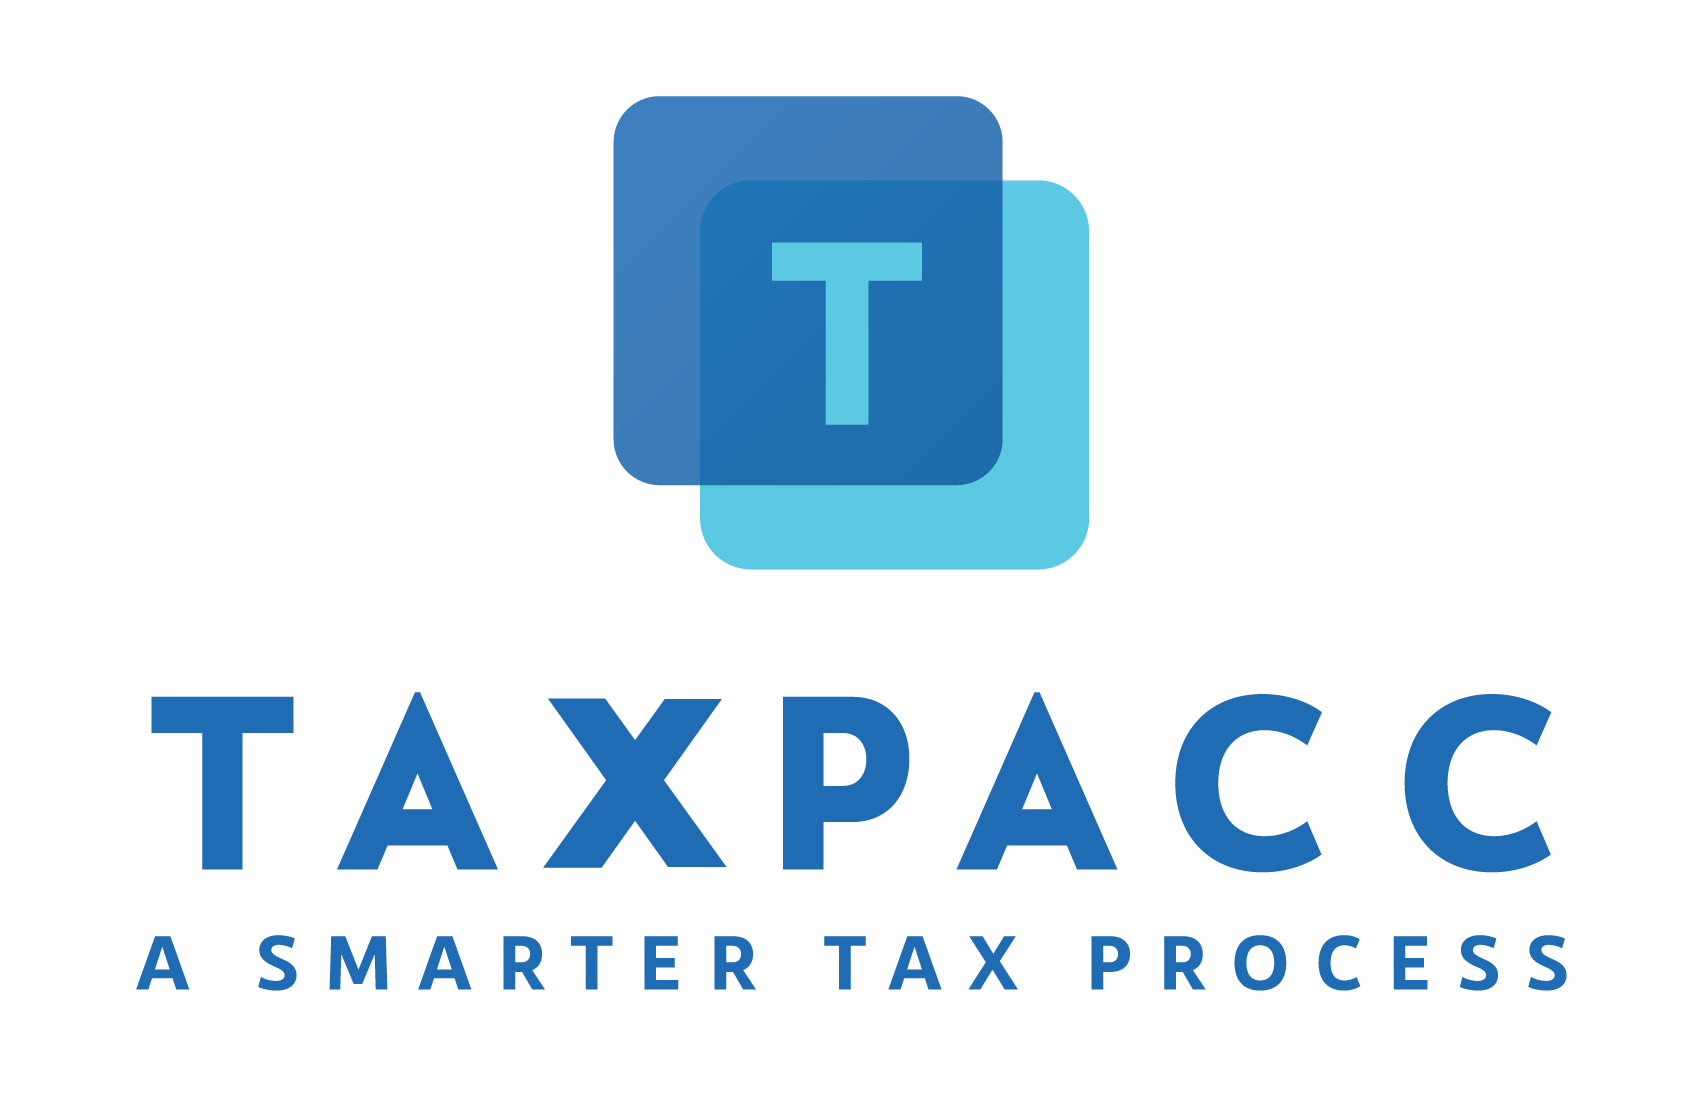 TaxPacc - a smarter tax process